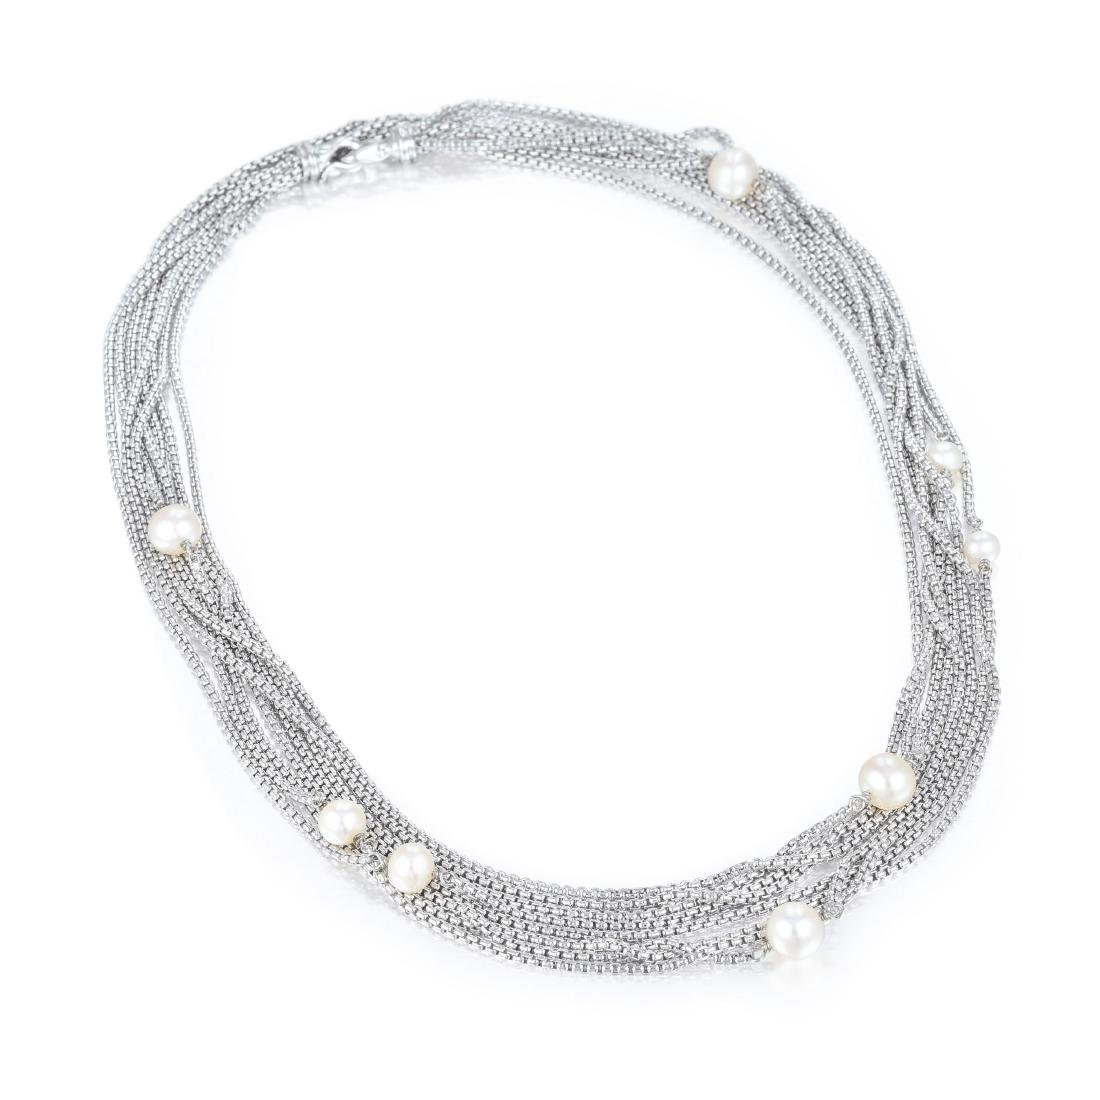 David Yurman Pearl Silver Necklace - 2